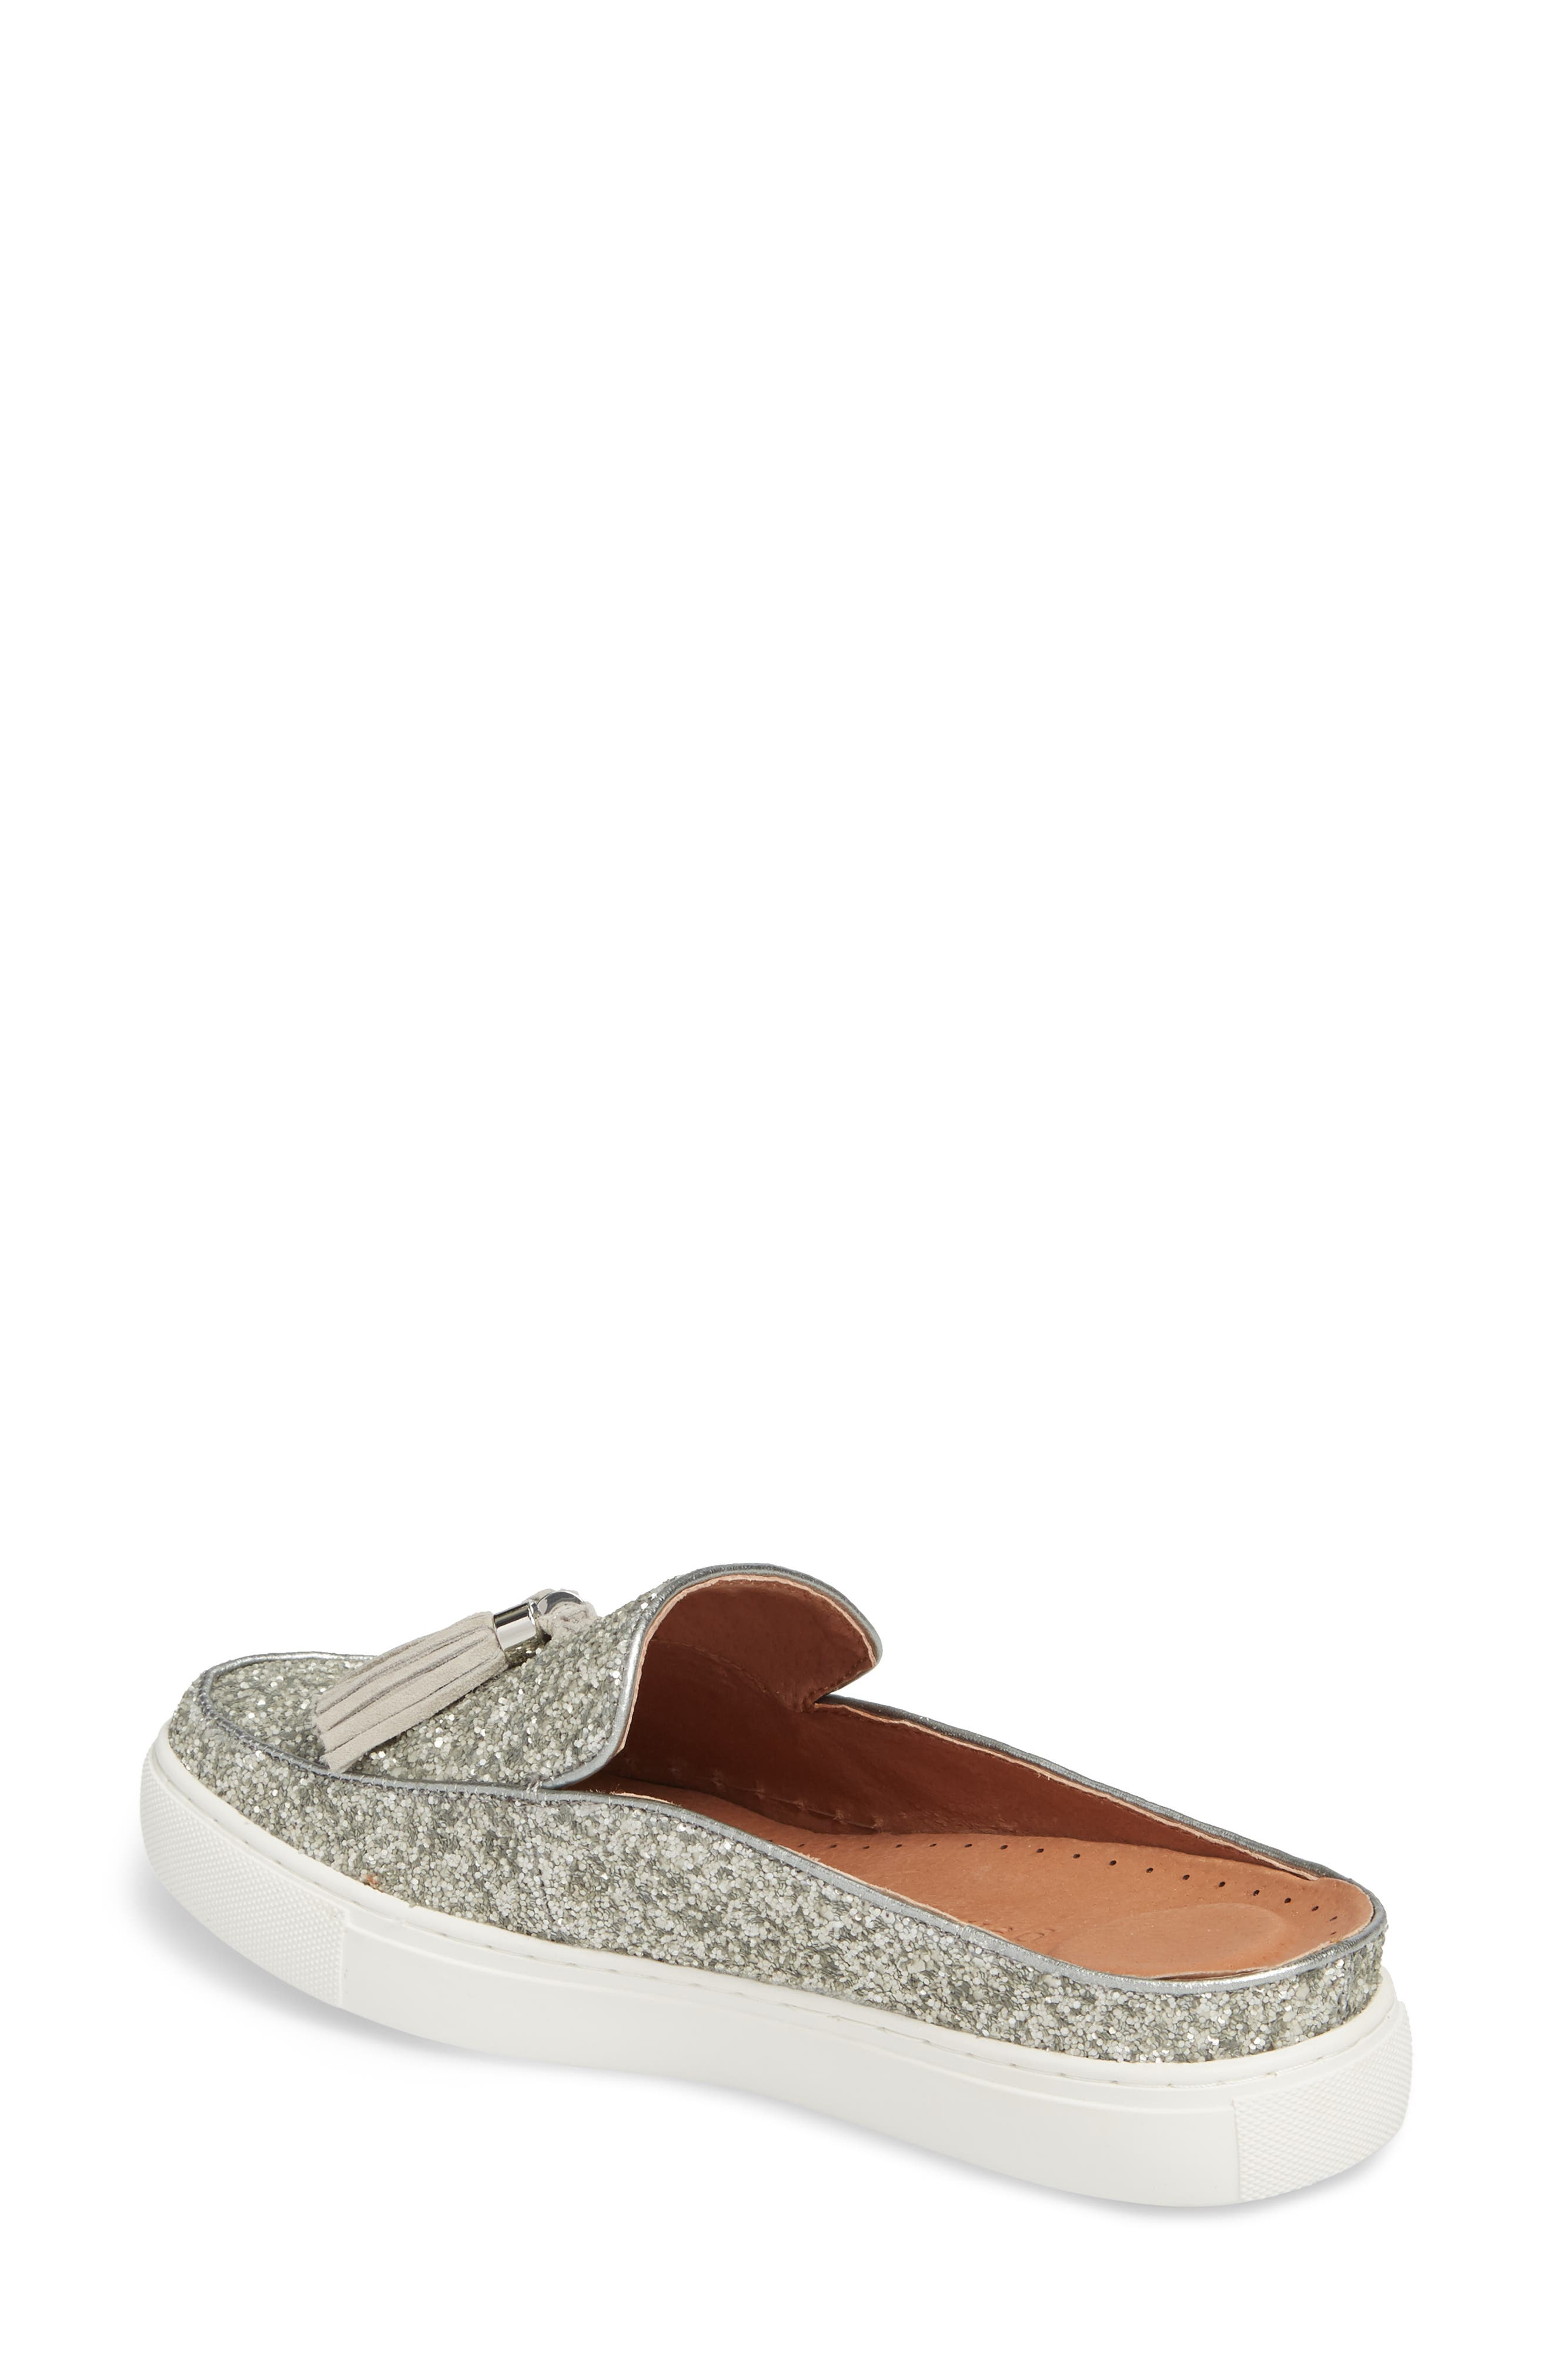 Rory Loafer Mule Sneaker,                             Alternate thumbnail 2, color,                             040